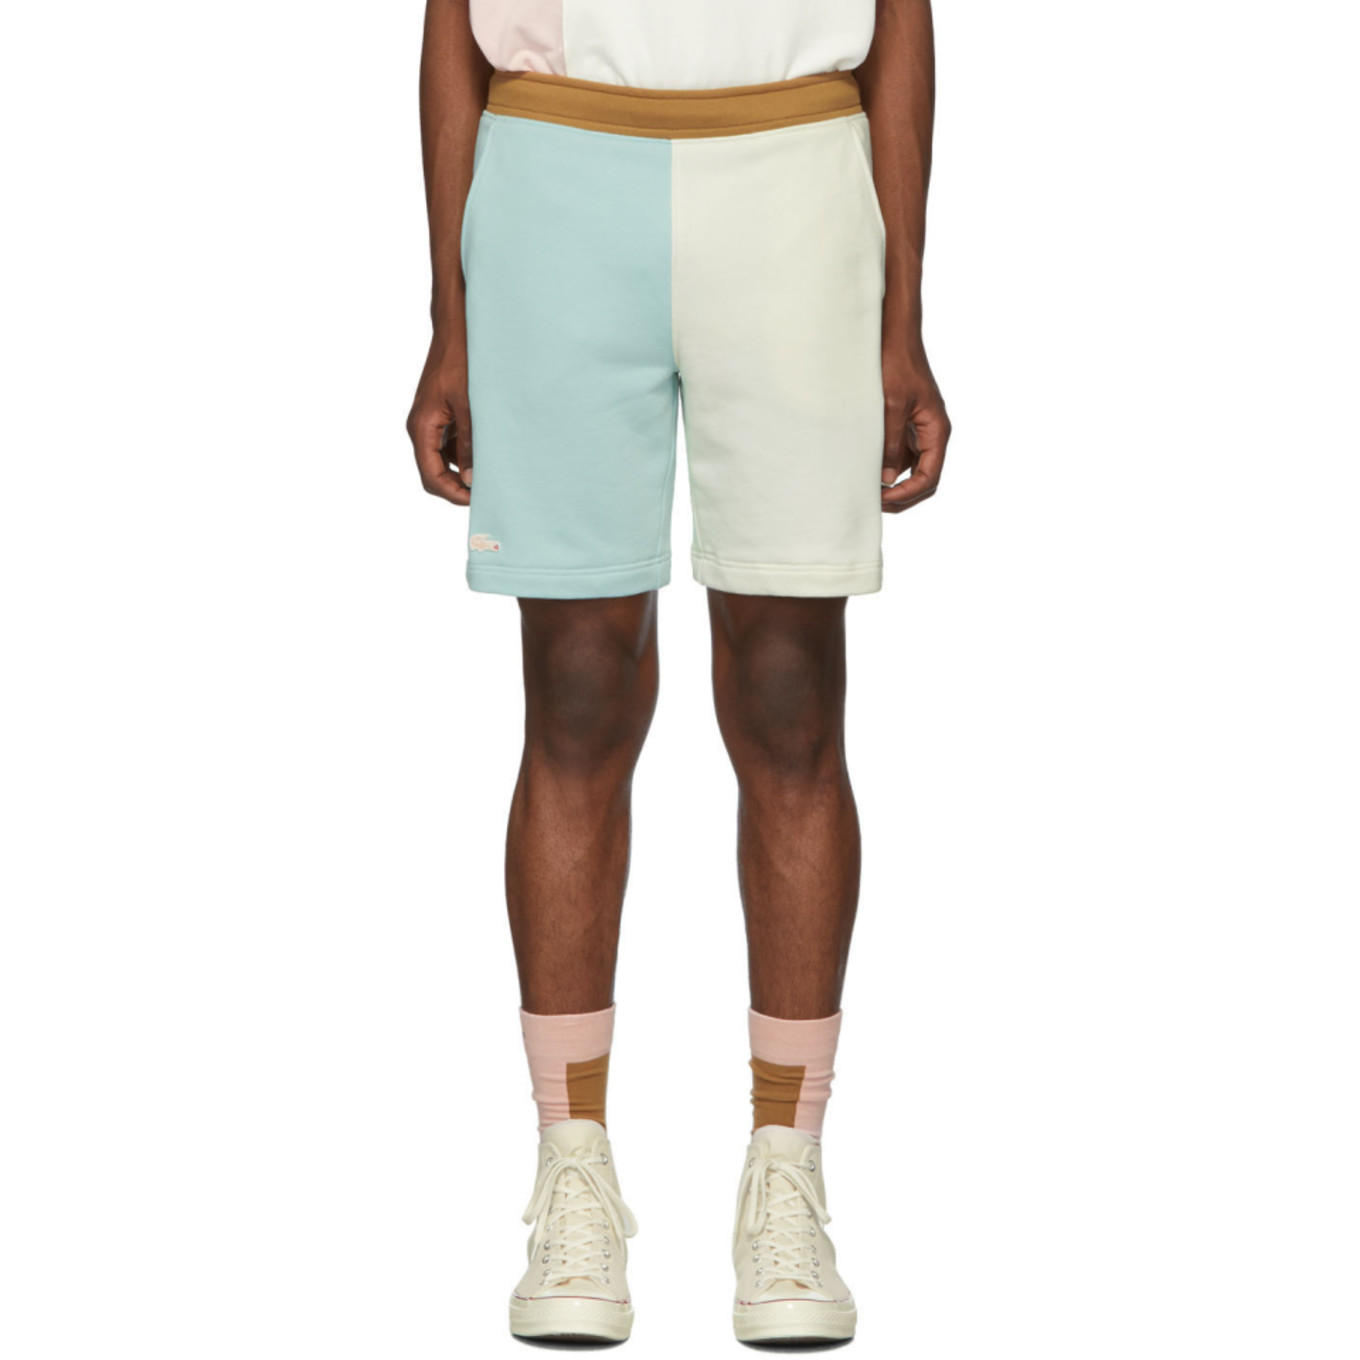 blue-&-off-white-golf-le-fleur*-edition-bermuda-shorts by lacoste